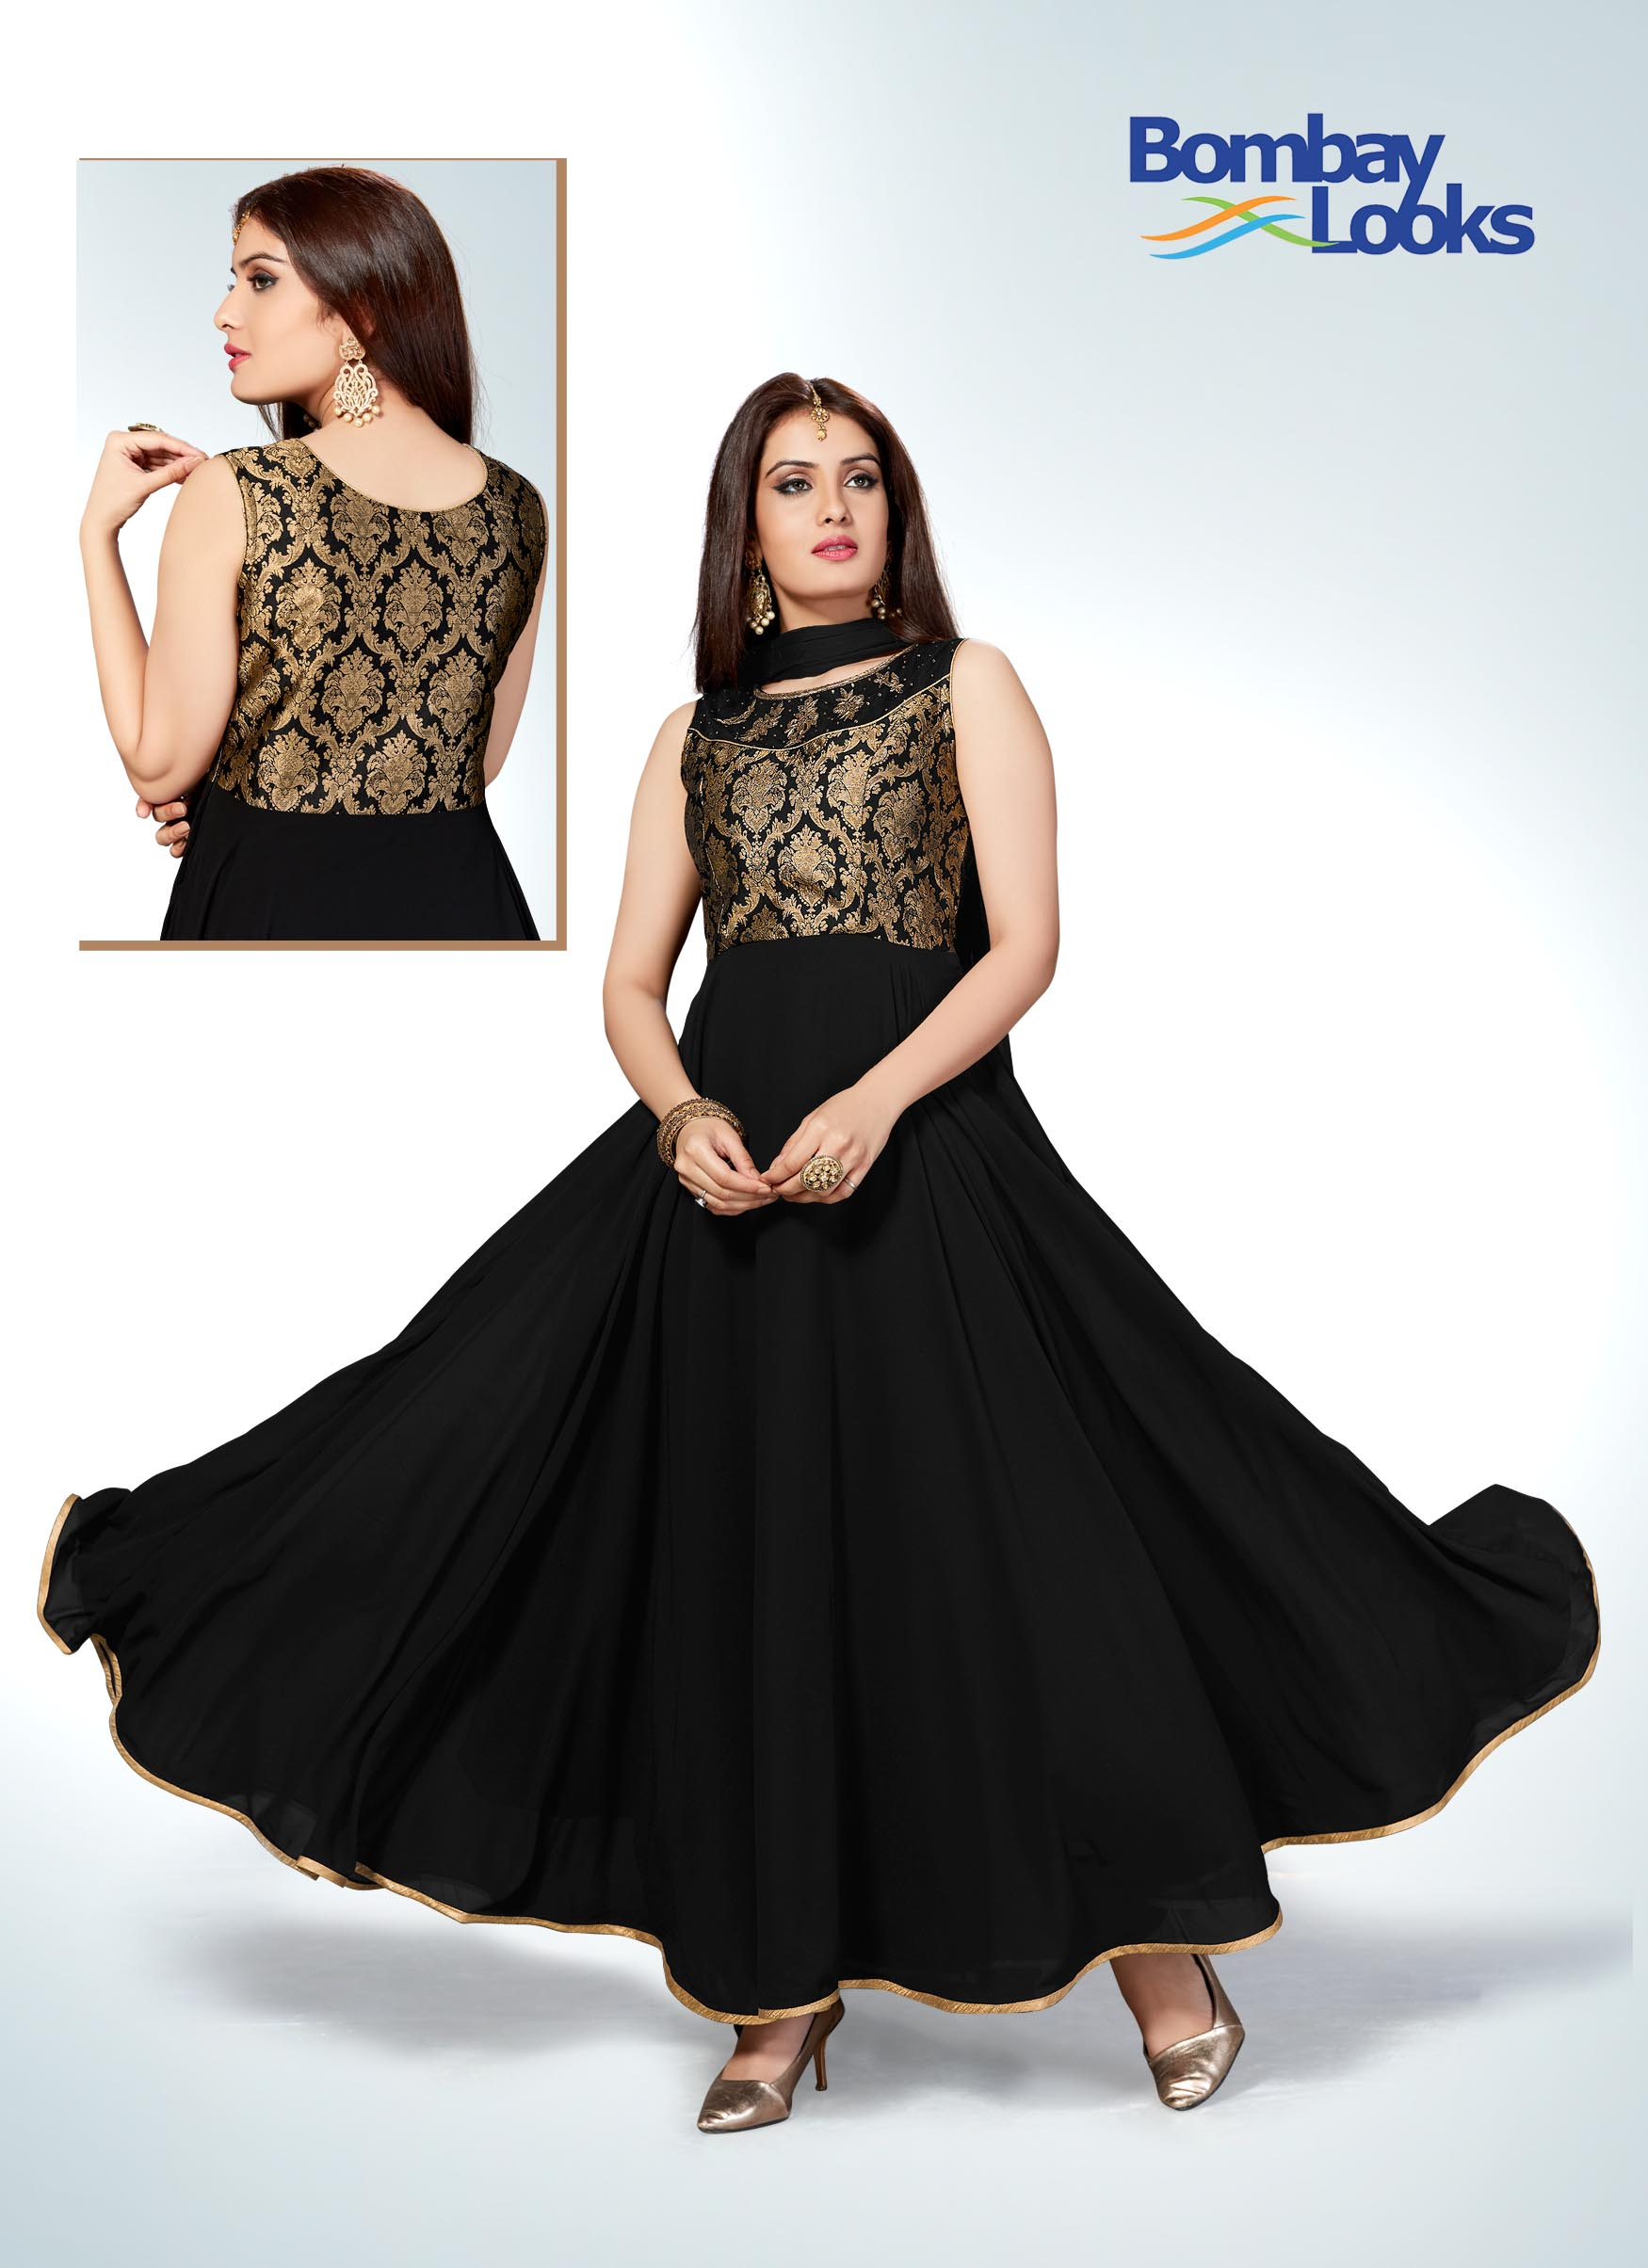 Raven black floor length anarkali with gold embroidered bodice